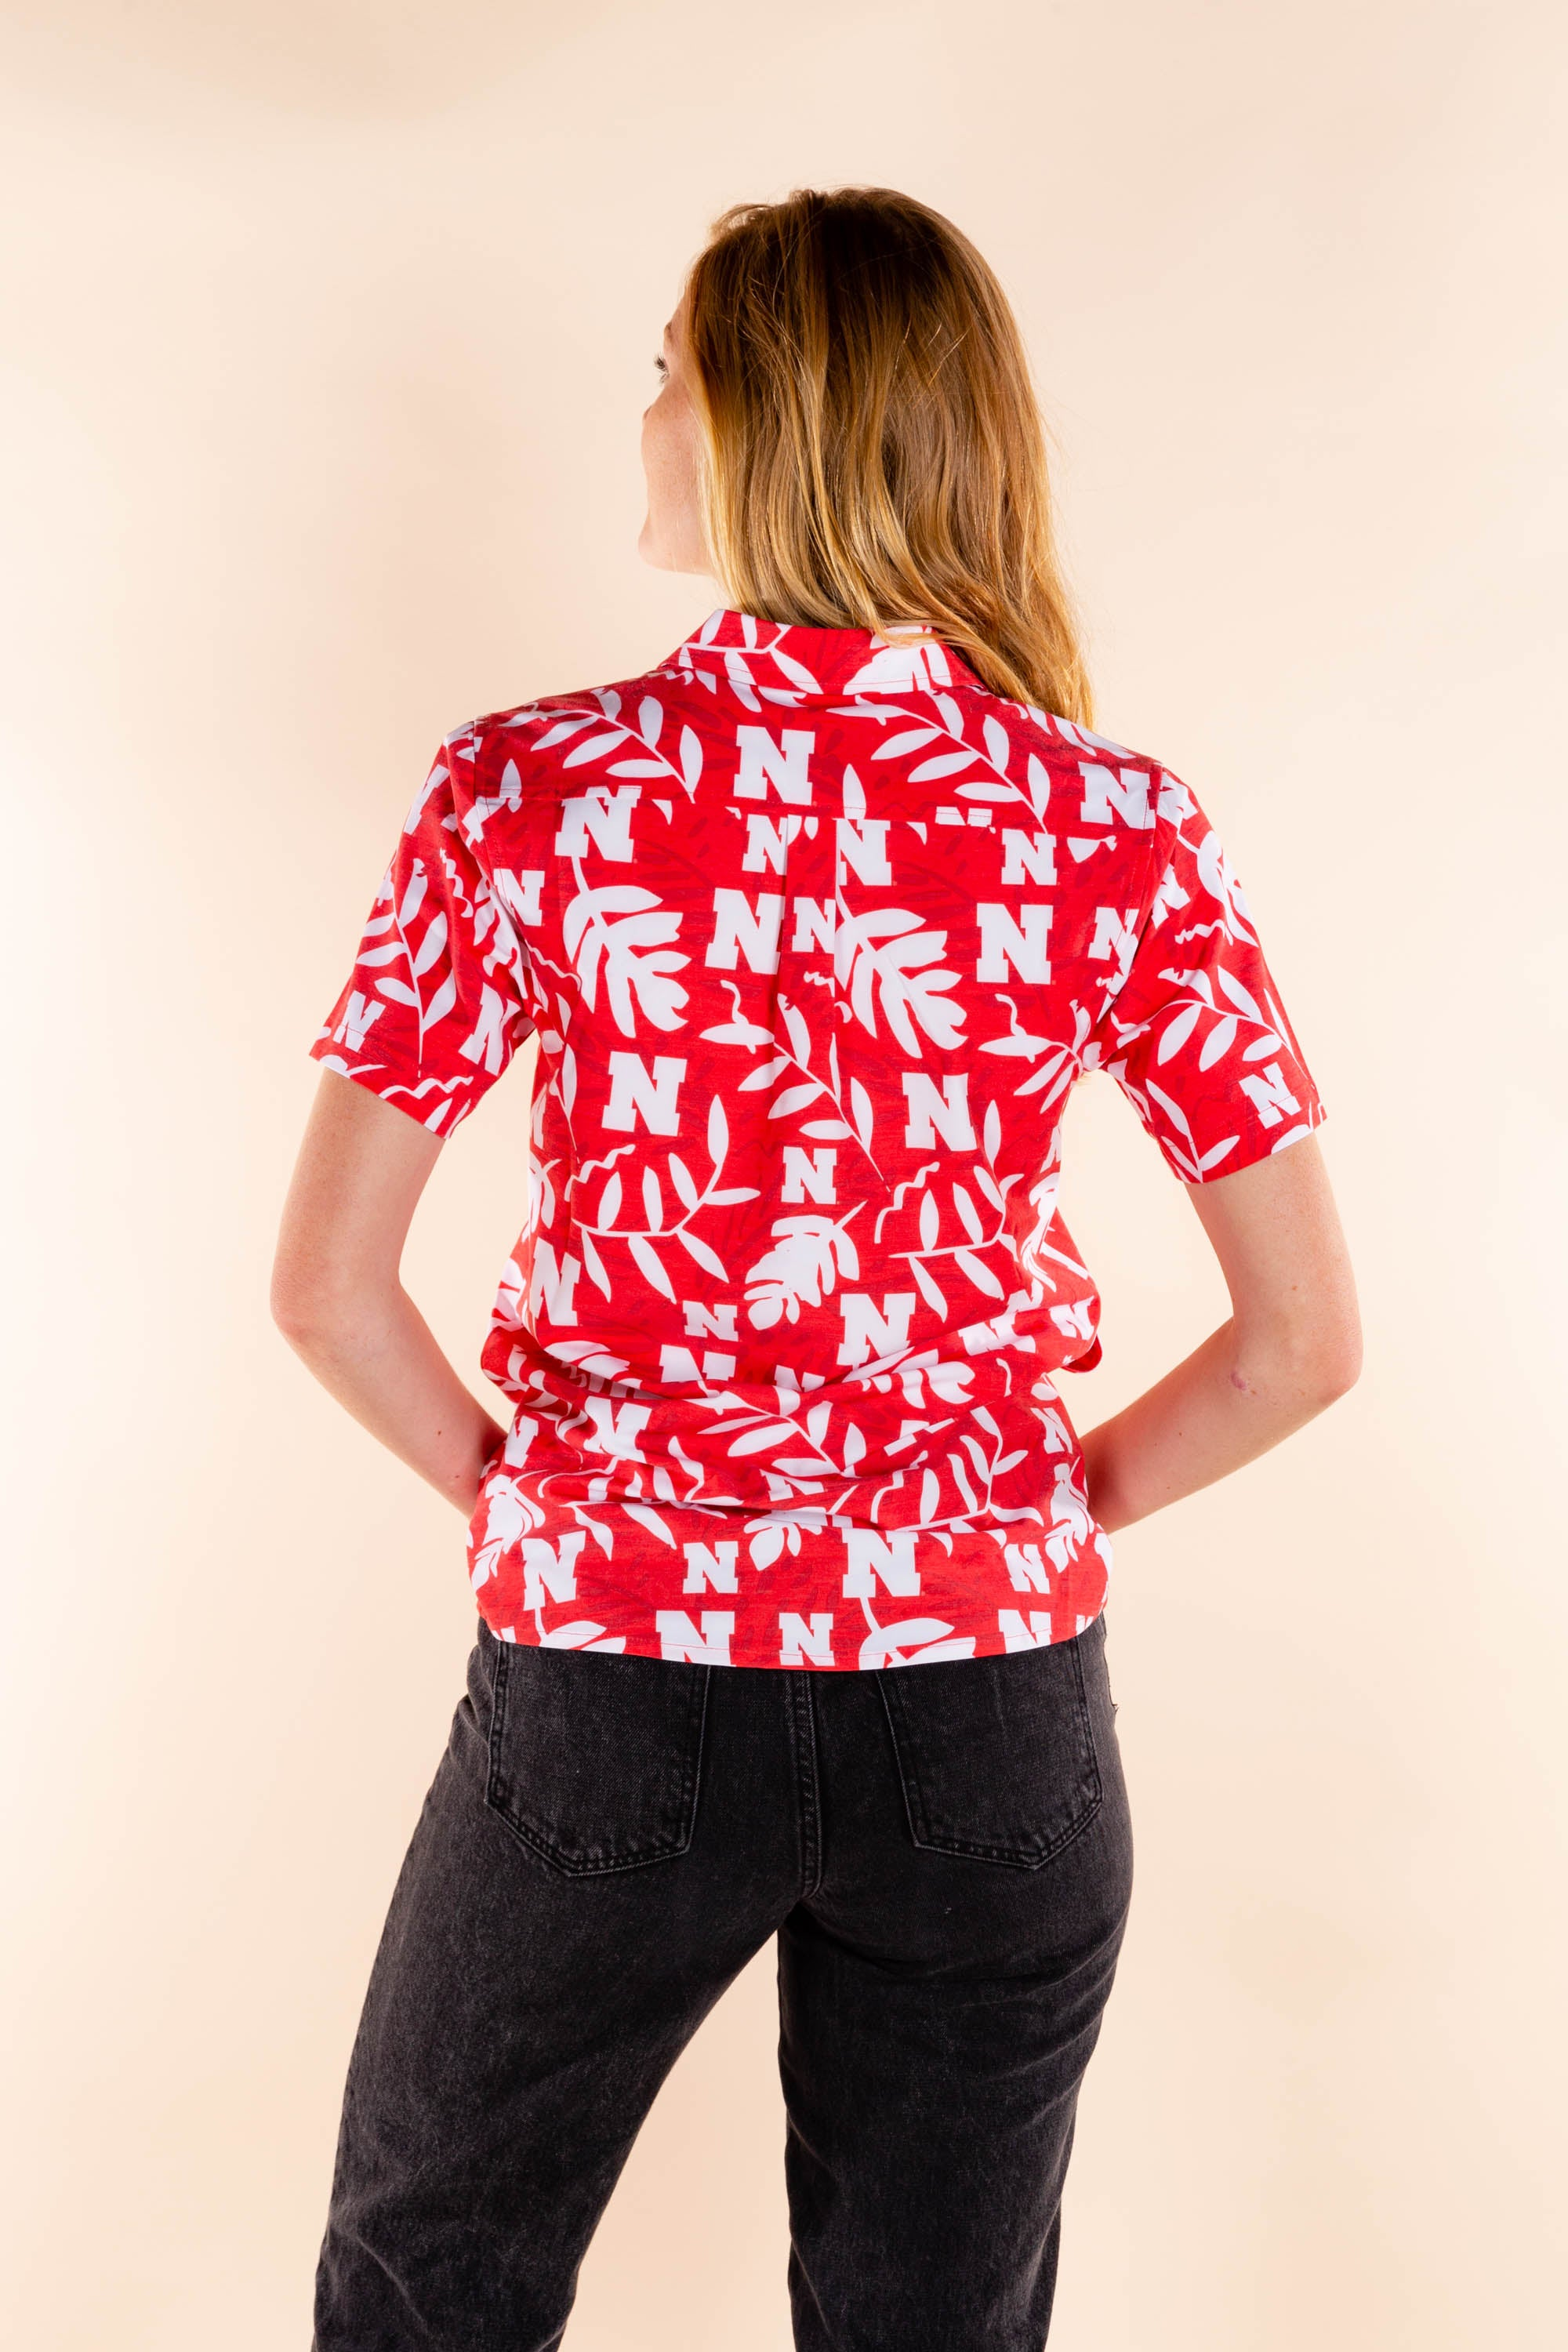 University of Nebraska Women's Tailgating Shirt